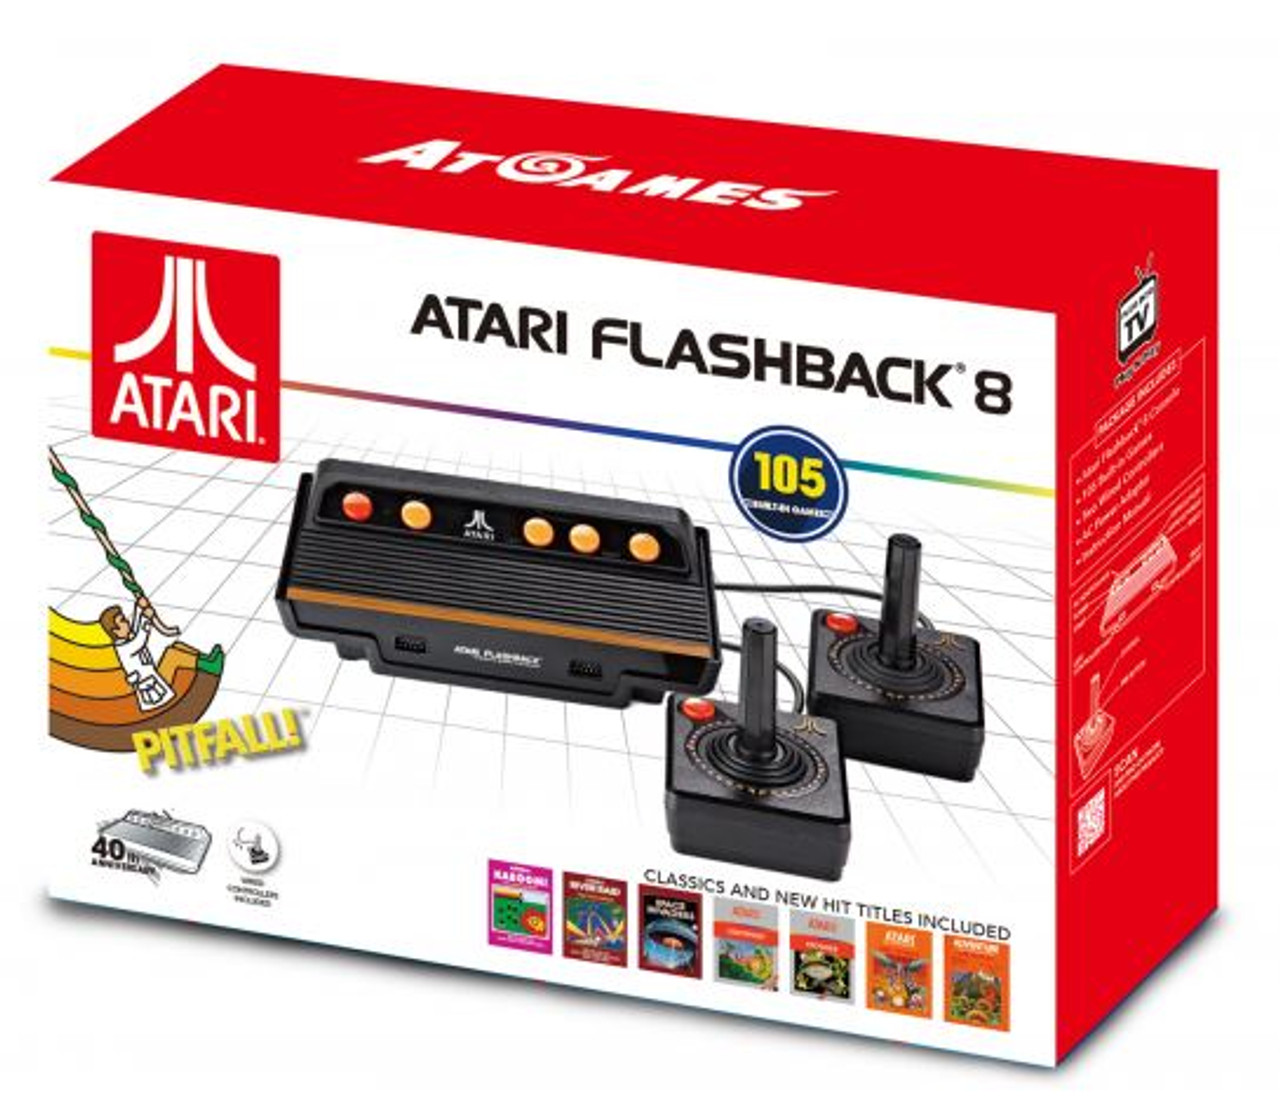 Atari Flashback 8 Classic Game Console 105 Built-in Games